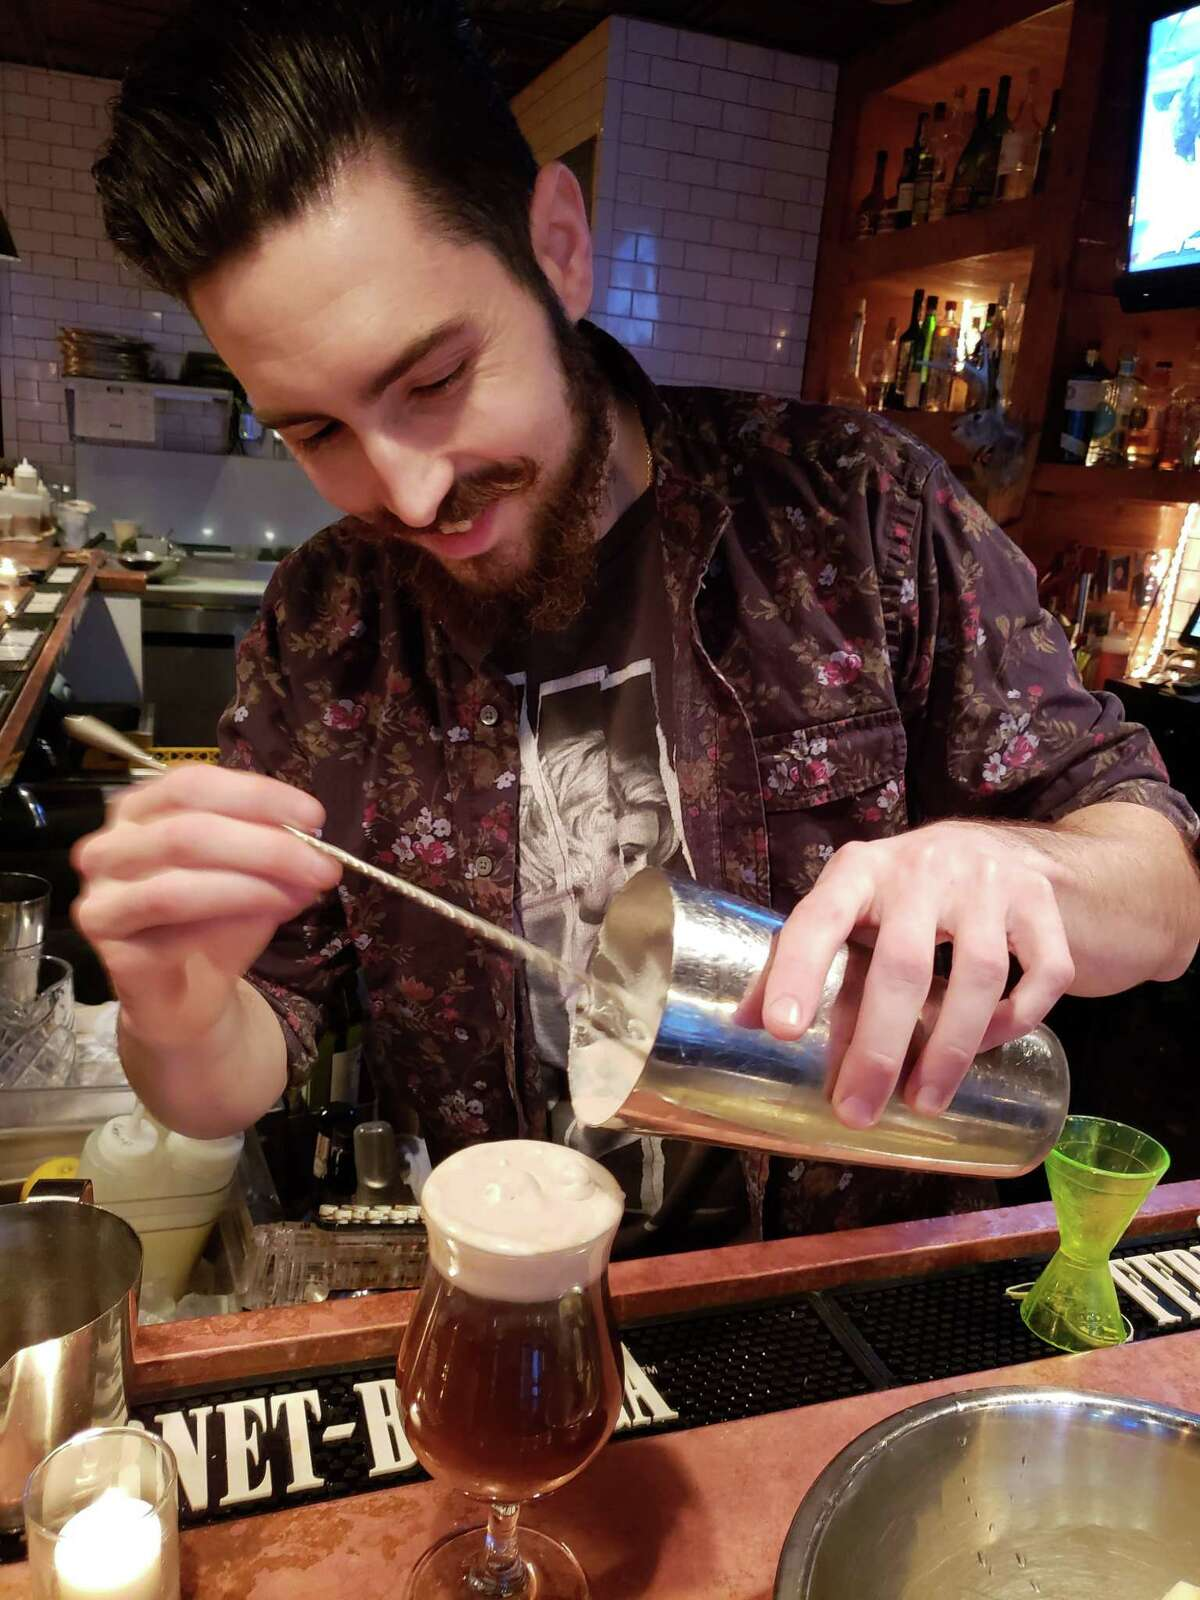 Bar Sugo mixologist Seth Hiravy, tall with a full beard and curling mustache, has an encyclopedic knowledge of mixology and speaks with authority about current trends in the cocktail business.